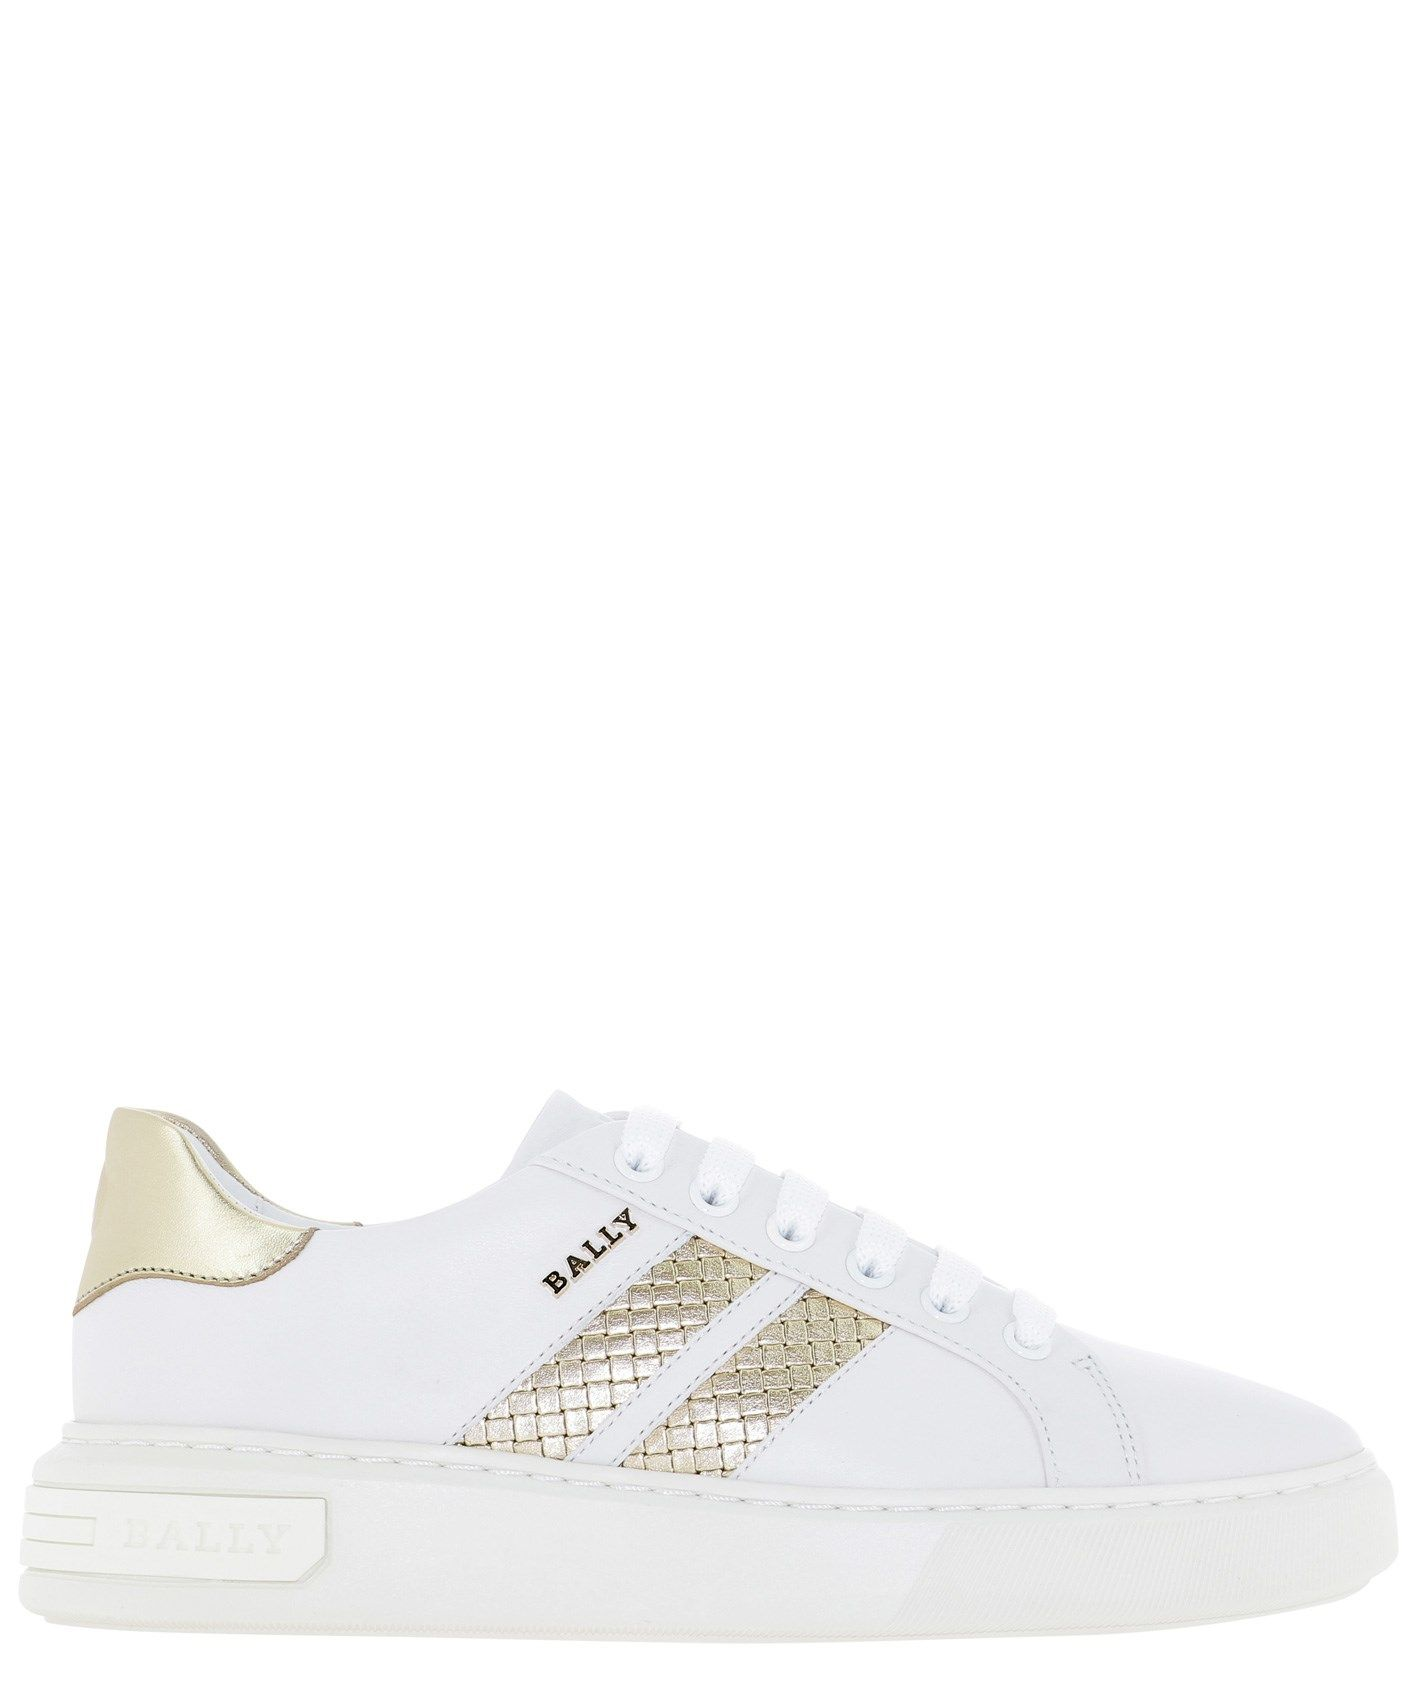 Bally BALLY WOMEN'S 6237820MARCUSIWPLATINOWHI GOLD OTHER MATERIALS SNEAKERS